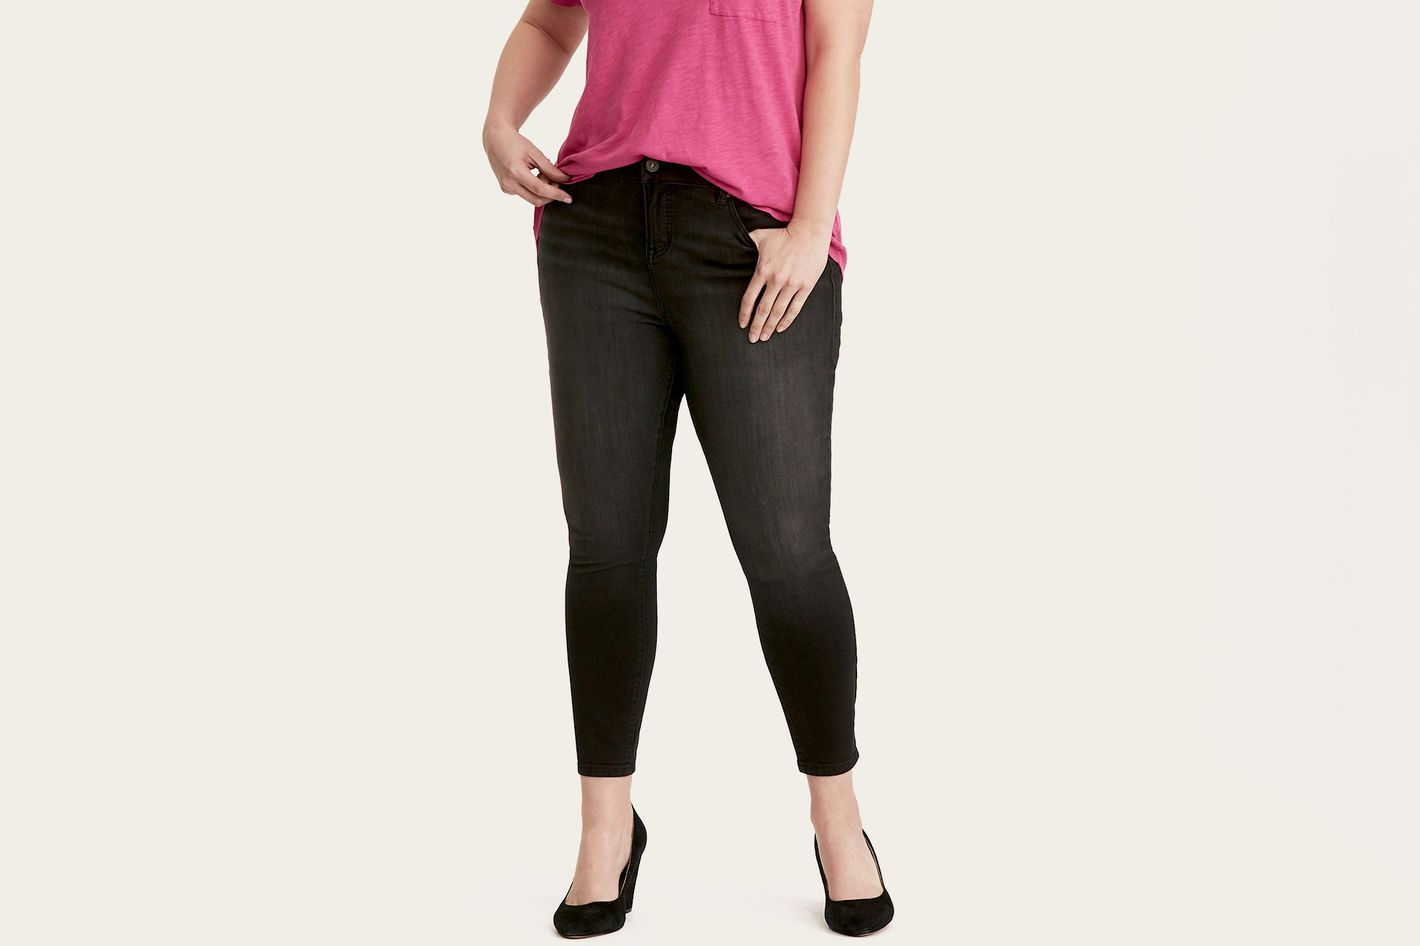 Premium Stretch High-Rise Curvy Skinny Jeans